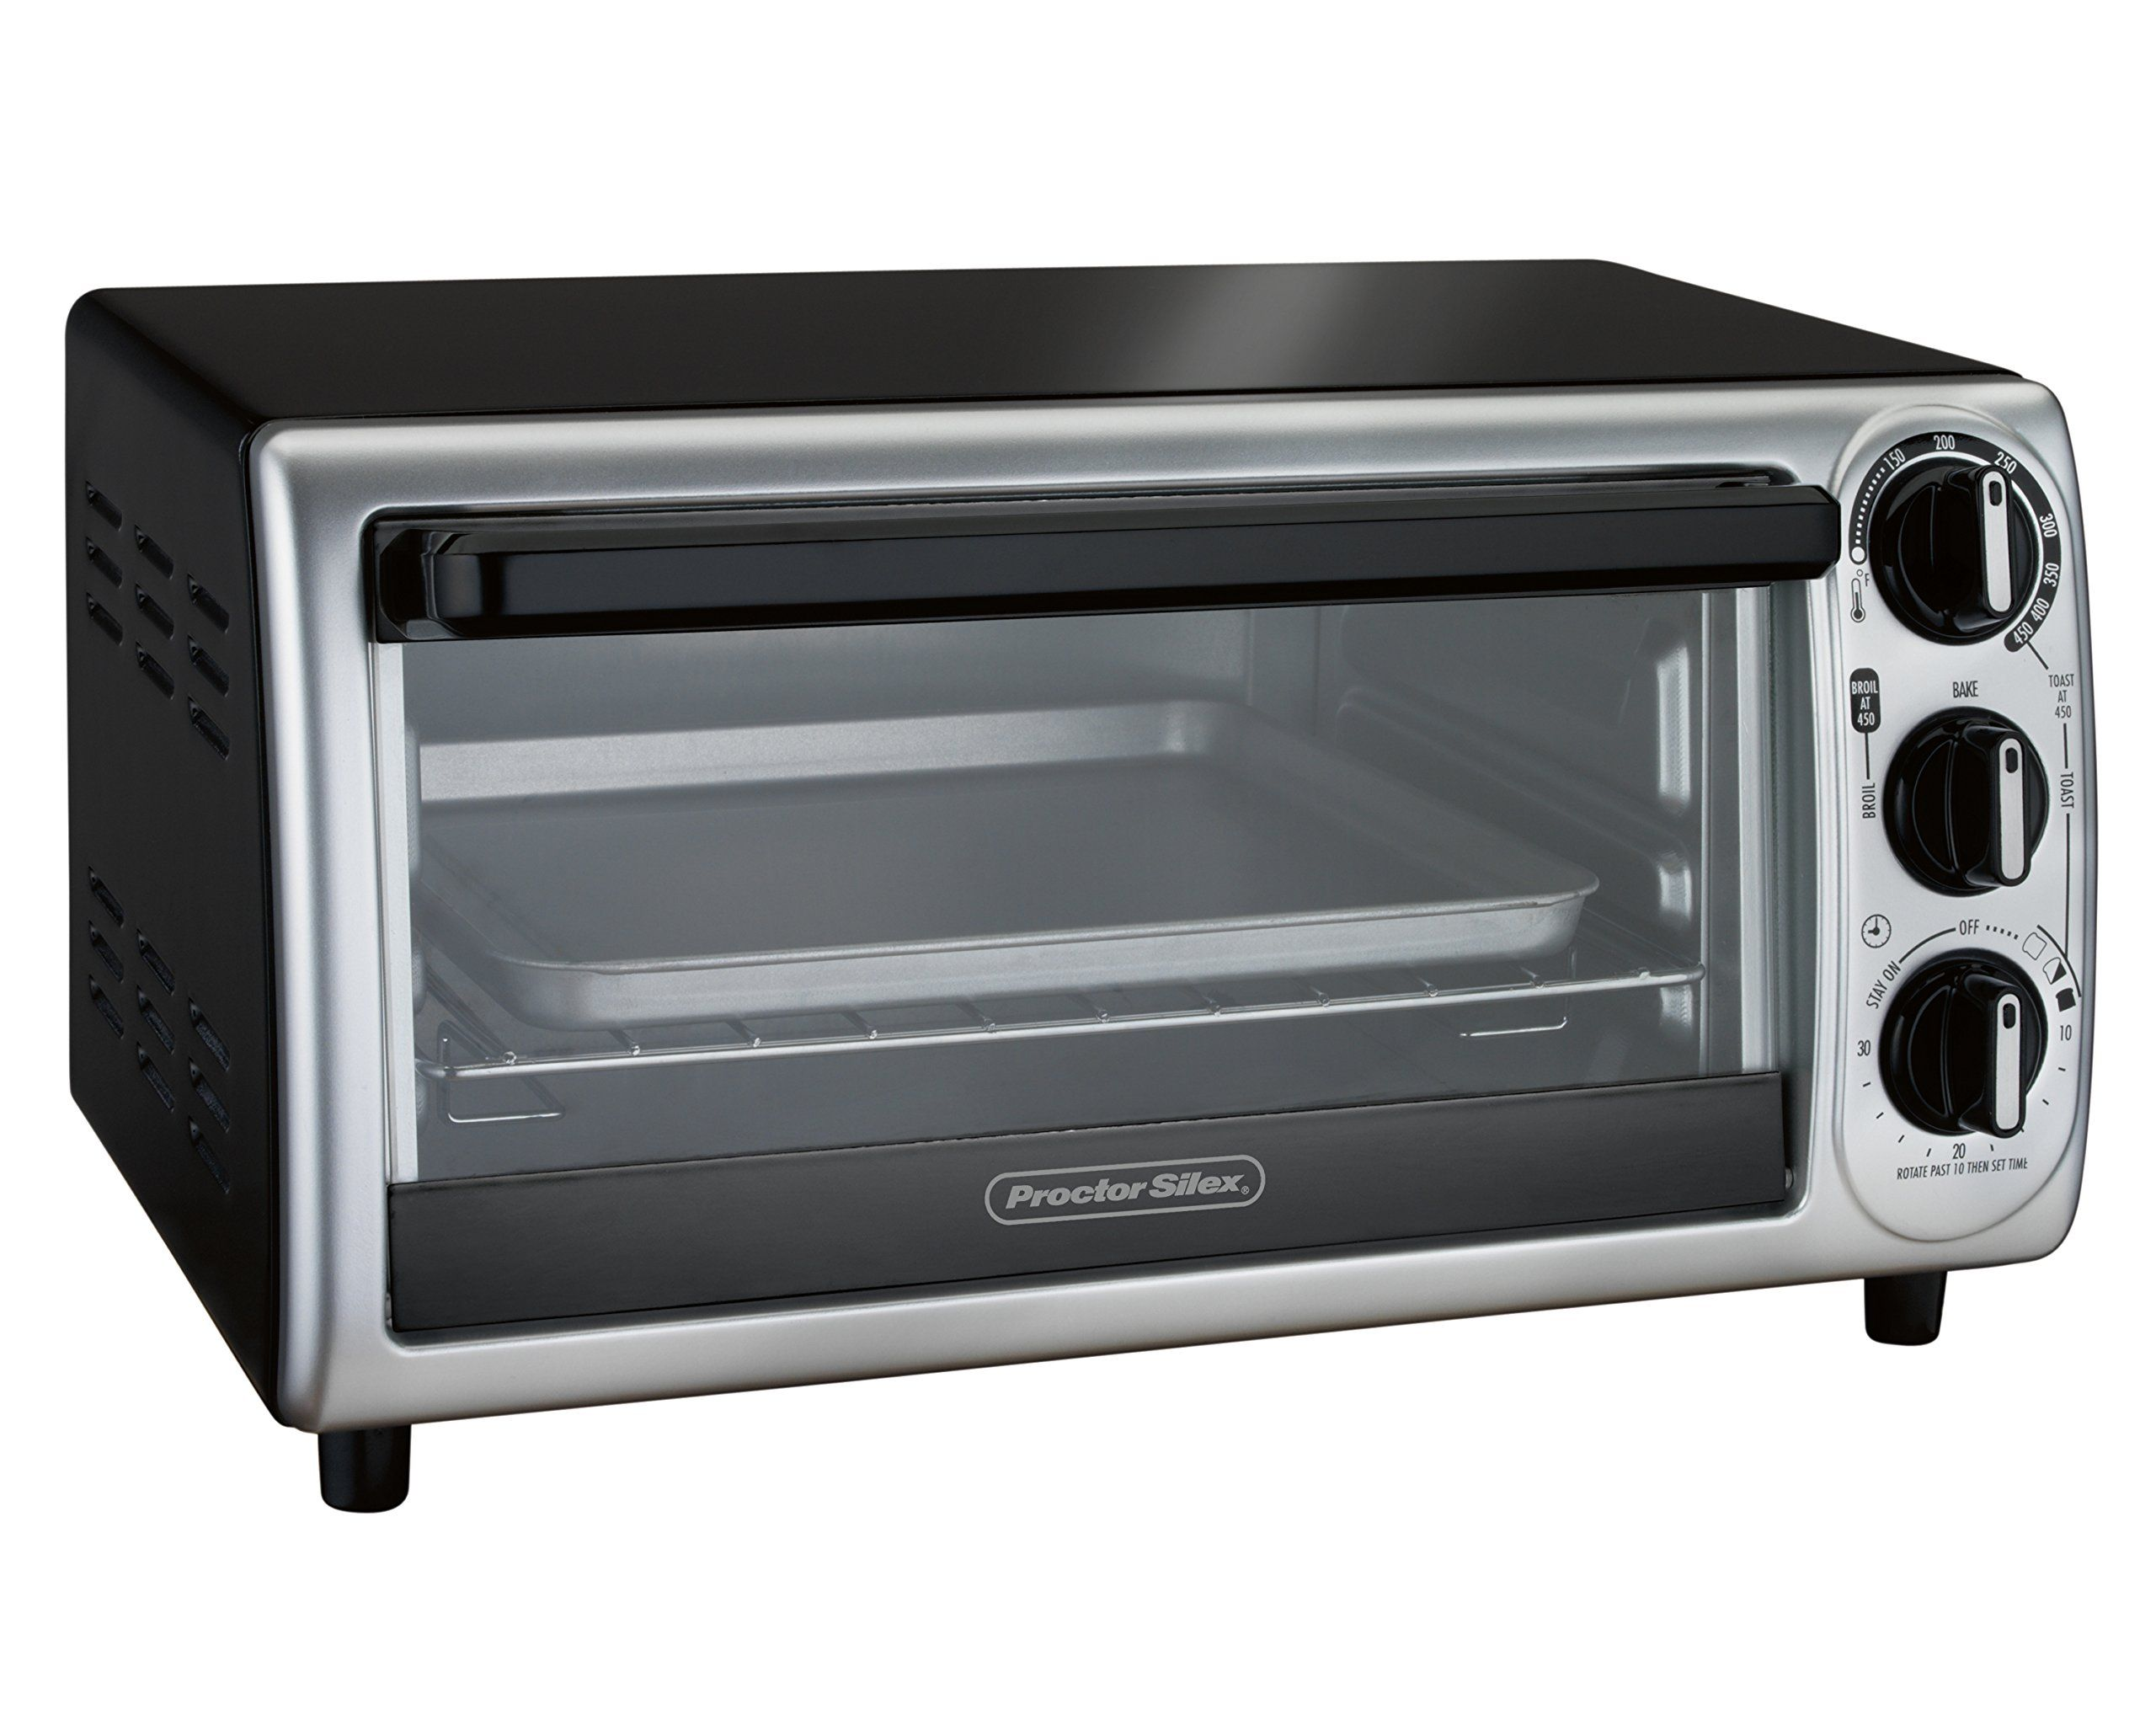 Proctor Silex 31122 Modern Toaster Oven Black Want To Know More Click On The Image This Is An Affiliate Link Toast Modern Toasters Toaster Toaster Oven